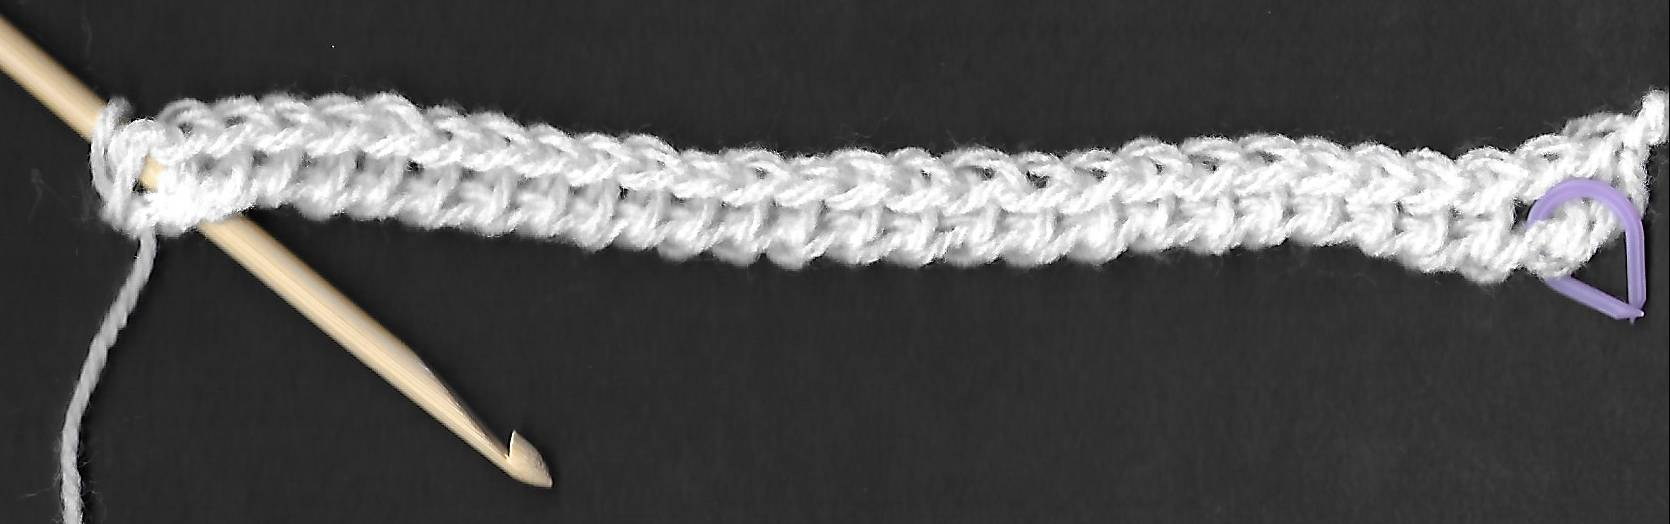 I can't determine what is the 2nd-t0-the-last stitch is or the last stitch is!-28-stitches-hook-jpg